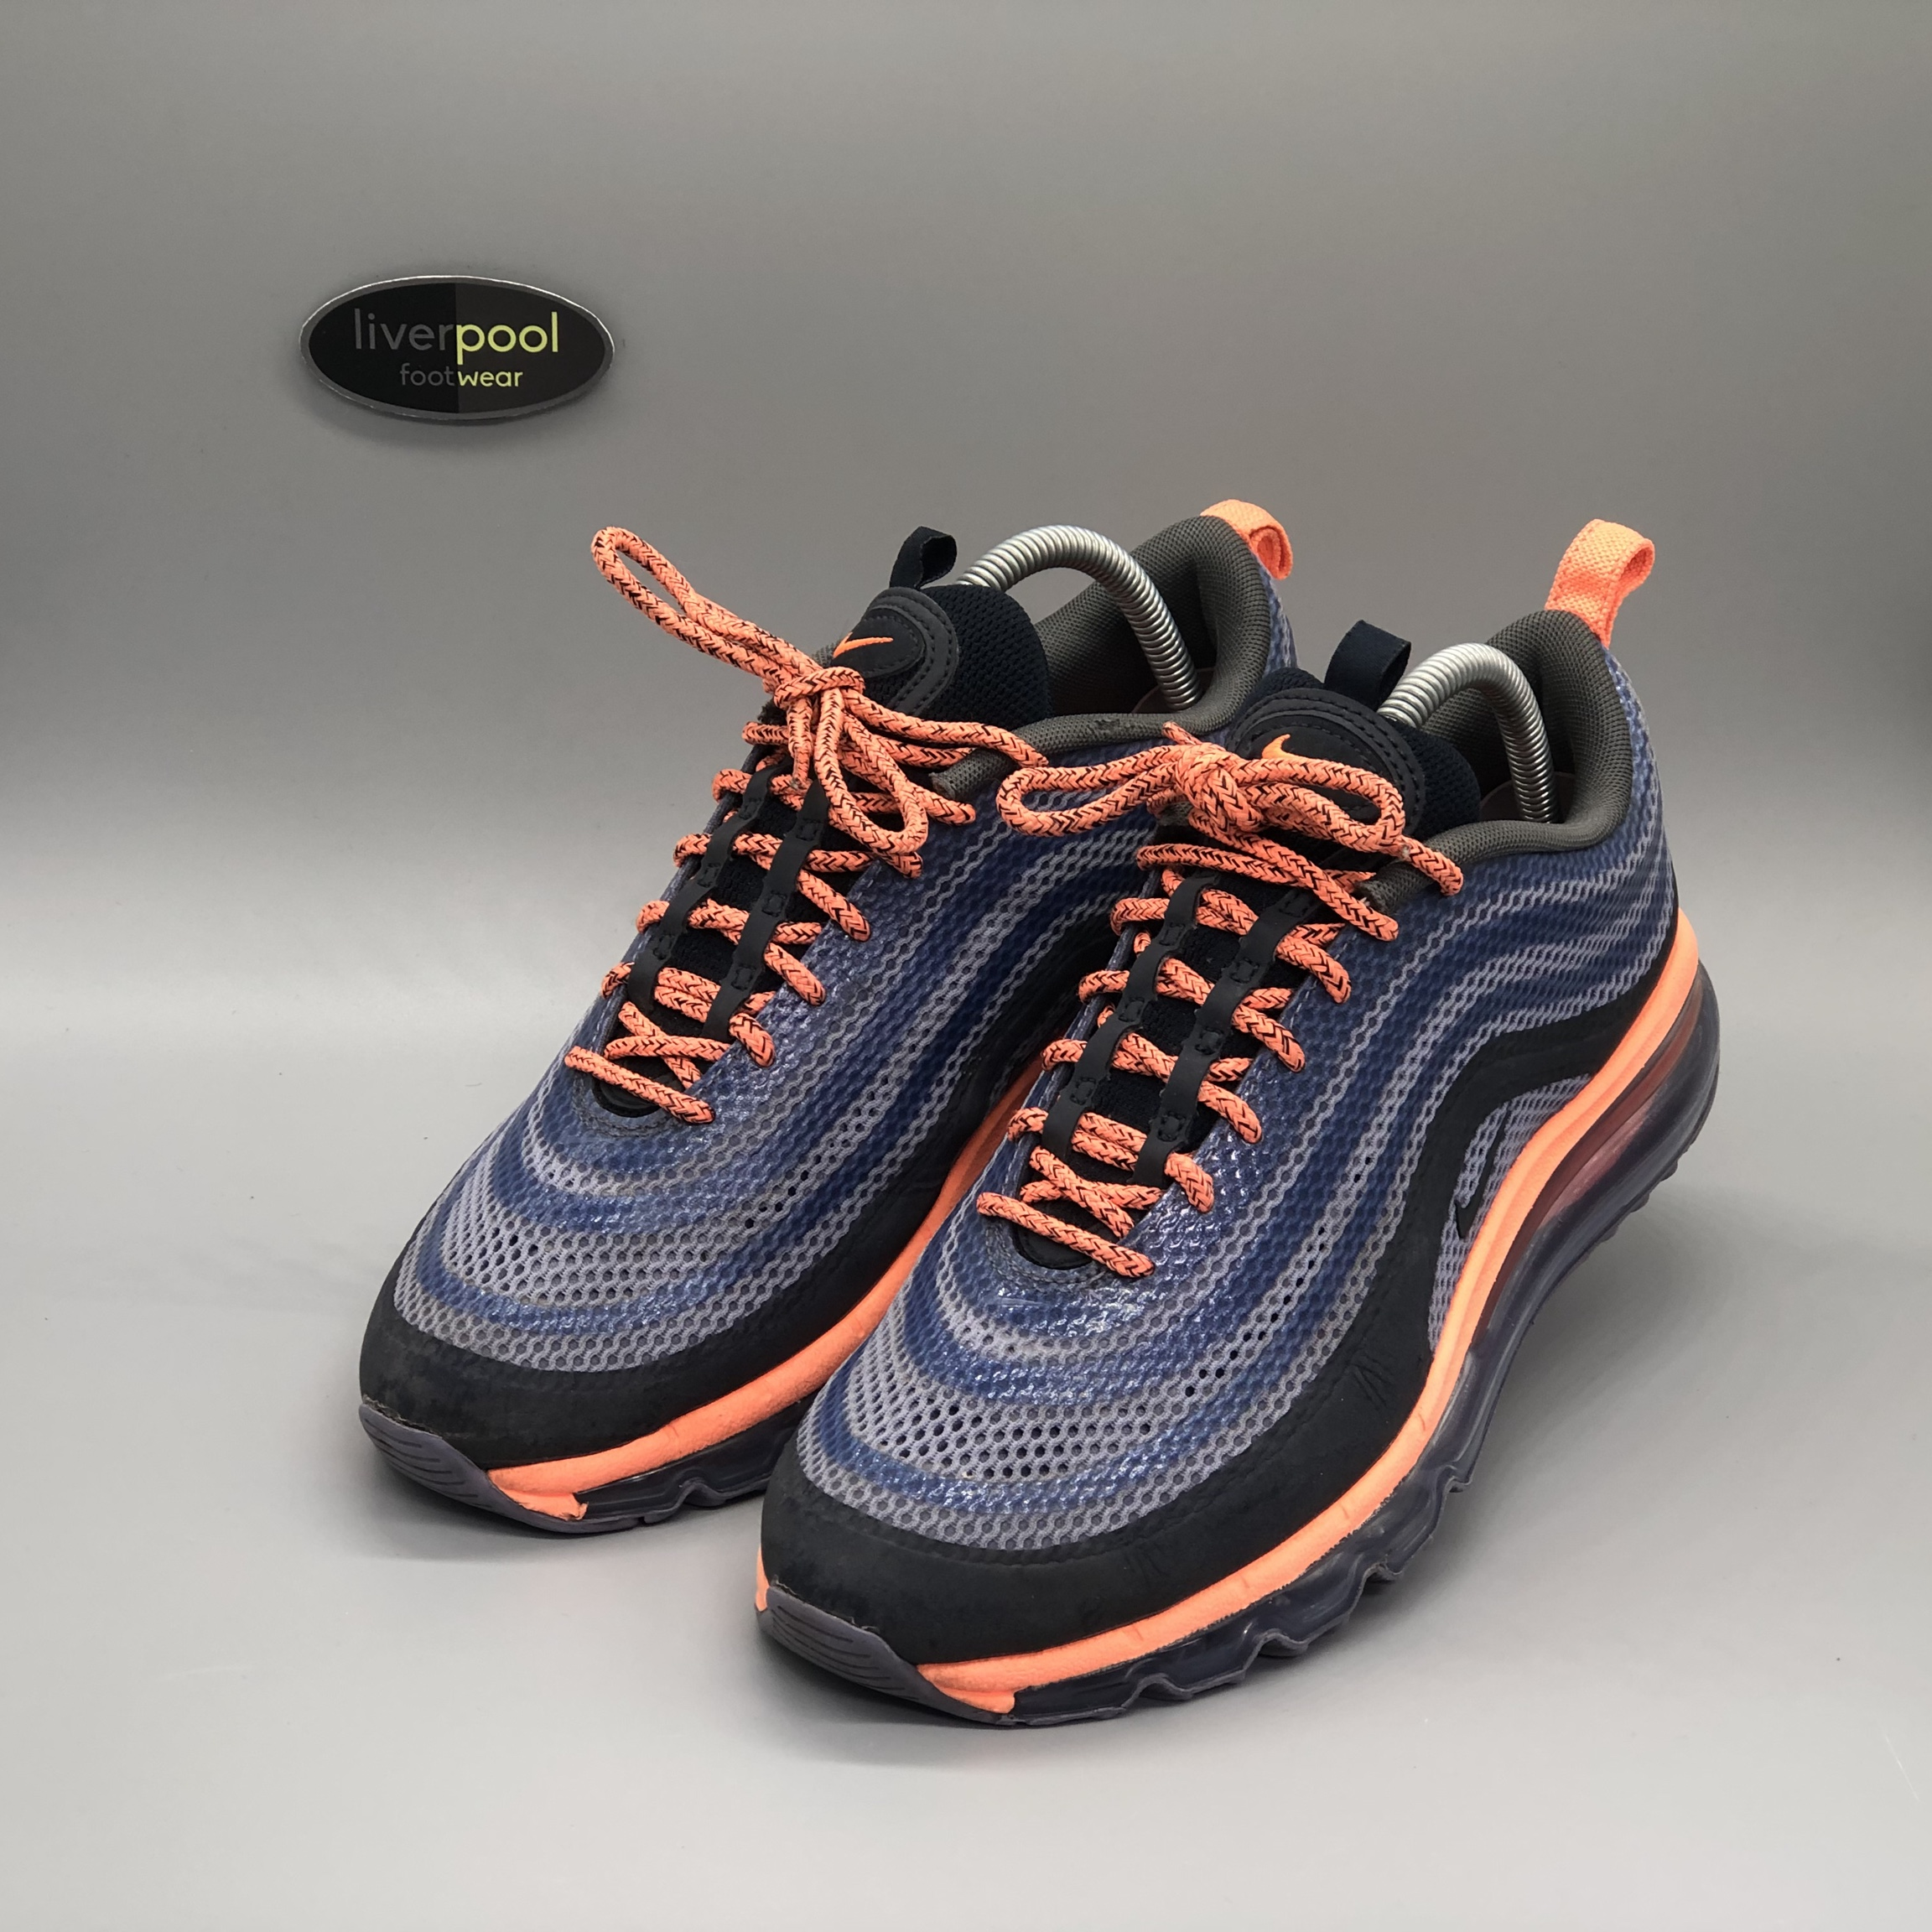 cheap for discount 26197 15de0 Nike Air Max 97 - Midnight Navy / Safety Orange -... - Depop